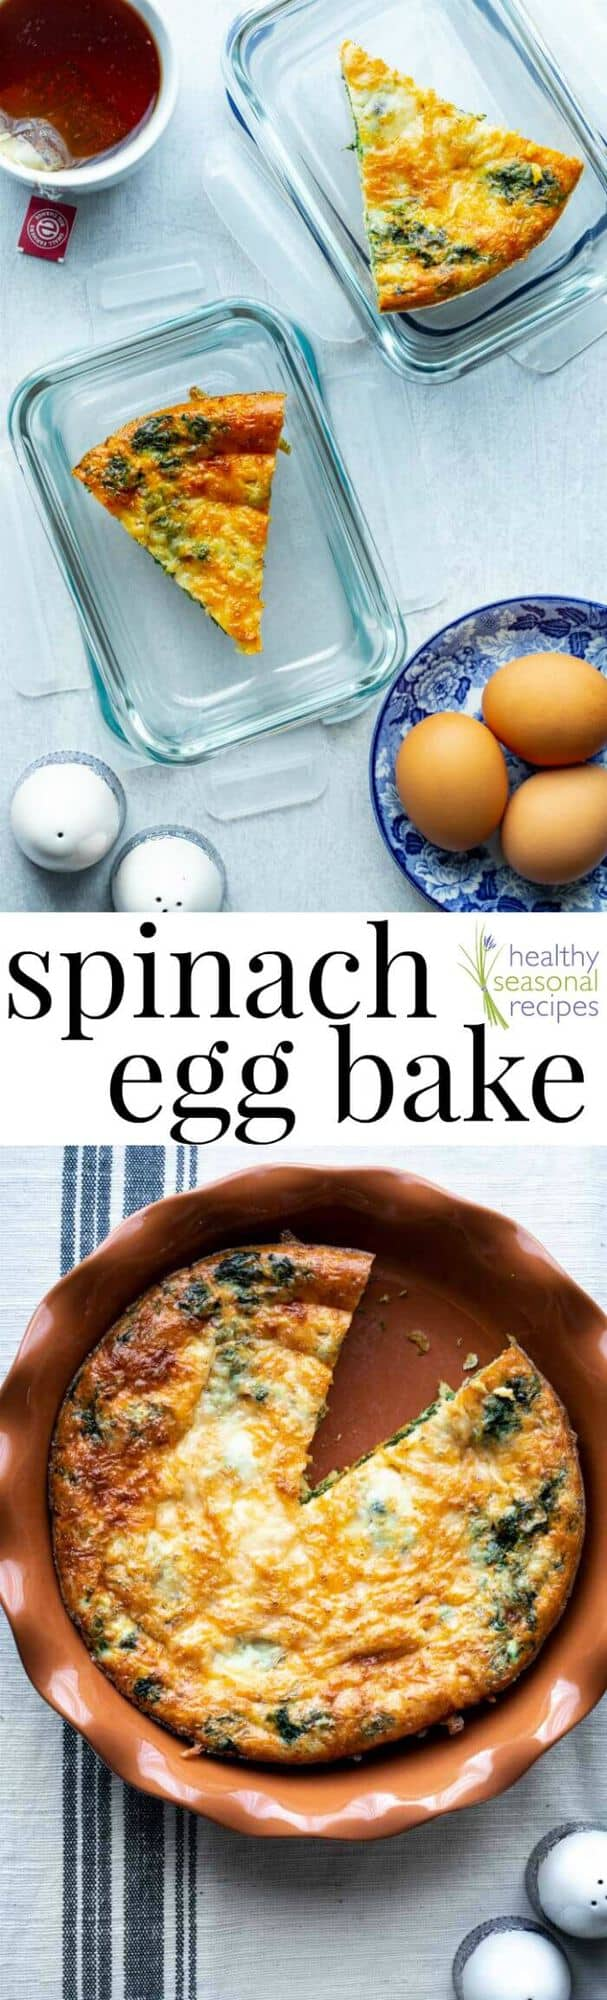 Spinach Egg Bake with sharp cheddar cheese, a grain-free meal prep breakfast recipe to make on the weekend, then grab and go on weekdays. Great for gluten-free, low-carb or keto diets and a since egg bakes are high in protein you'll stay full until lunchtime. #keto #glutenfree #eggbake #spinach #vegetarian #glutenfree #grainfree #primal #lowcarb